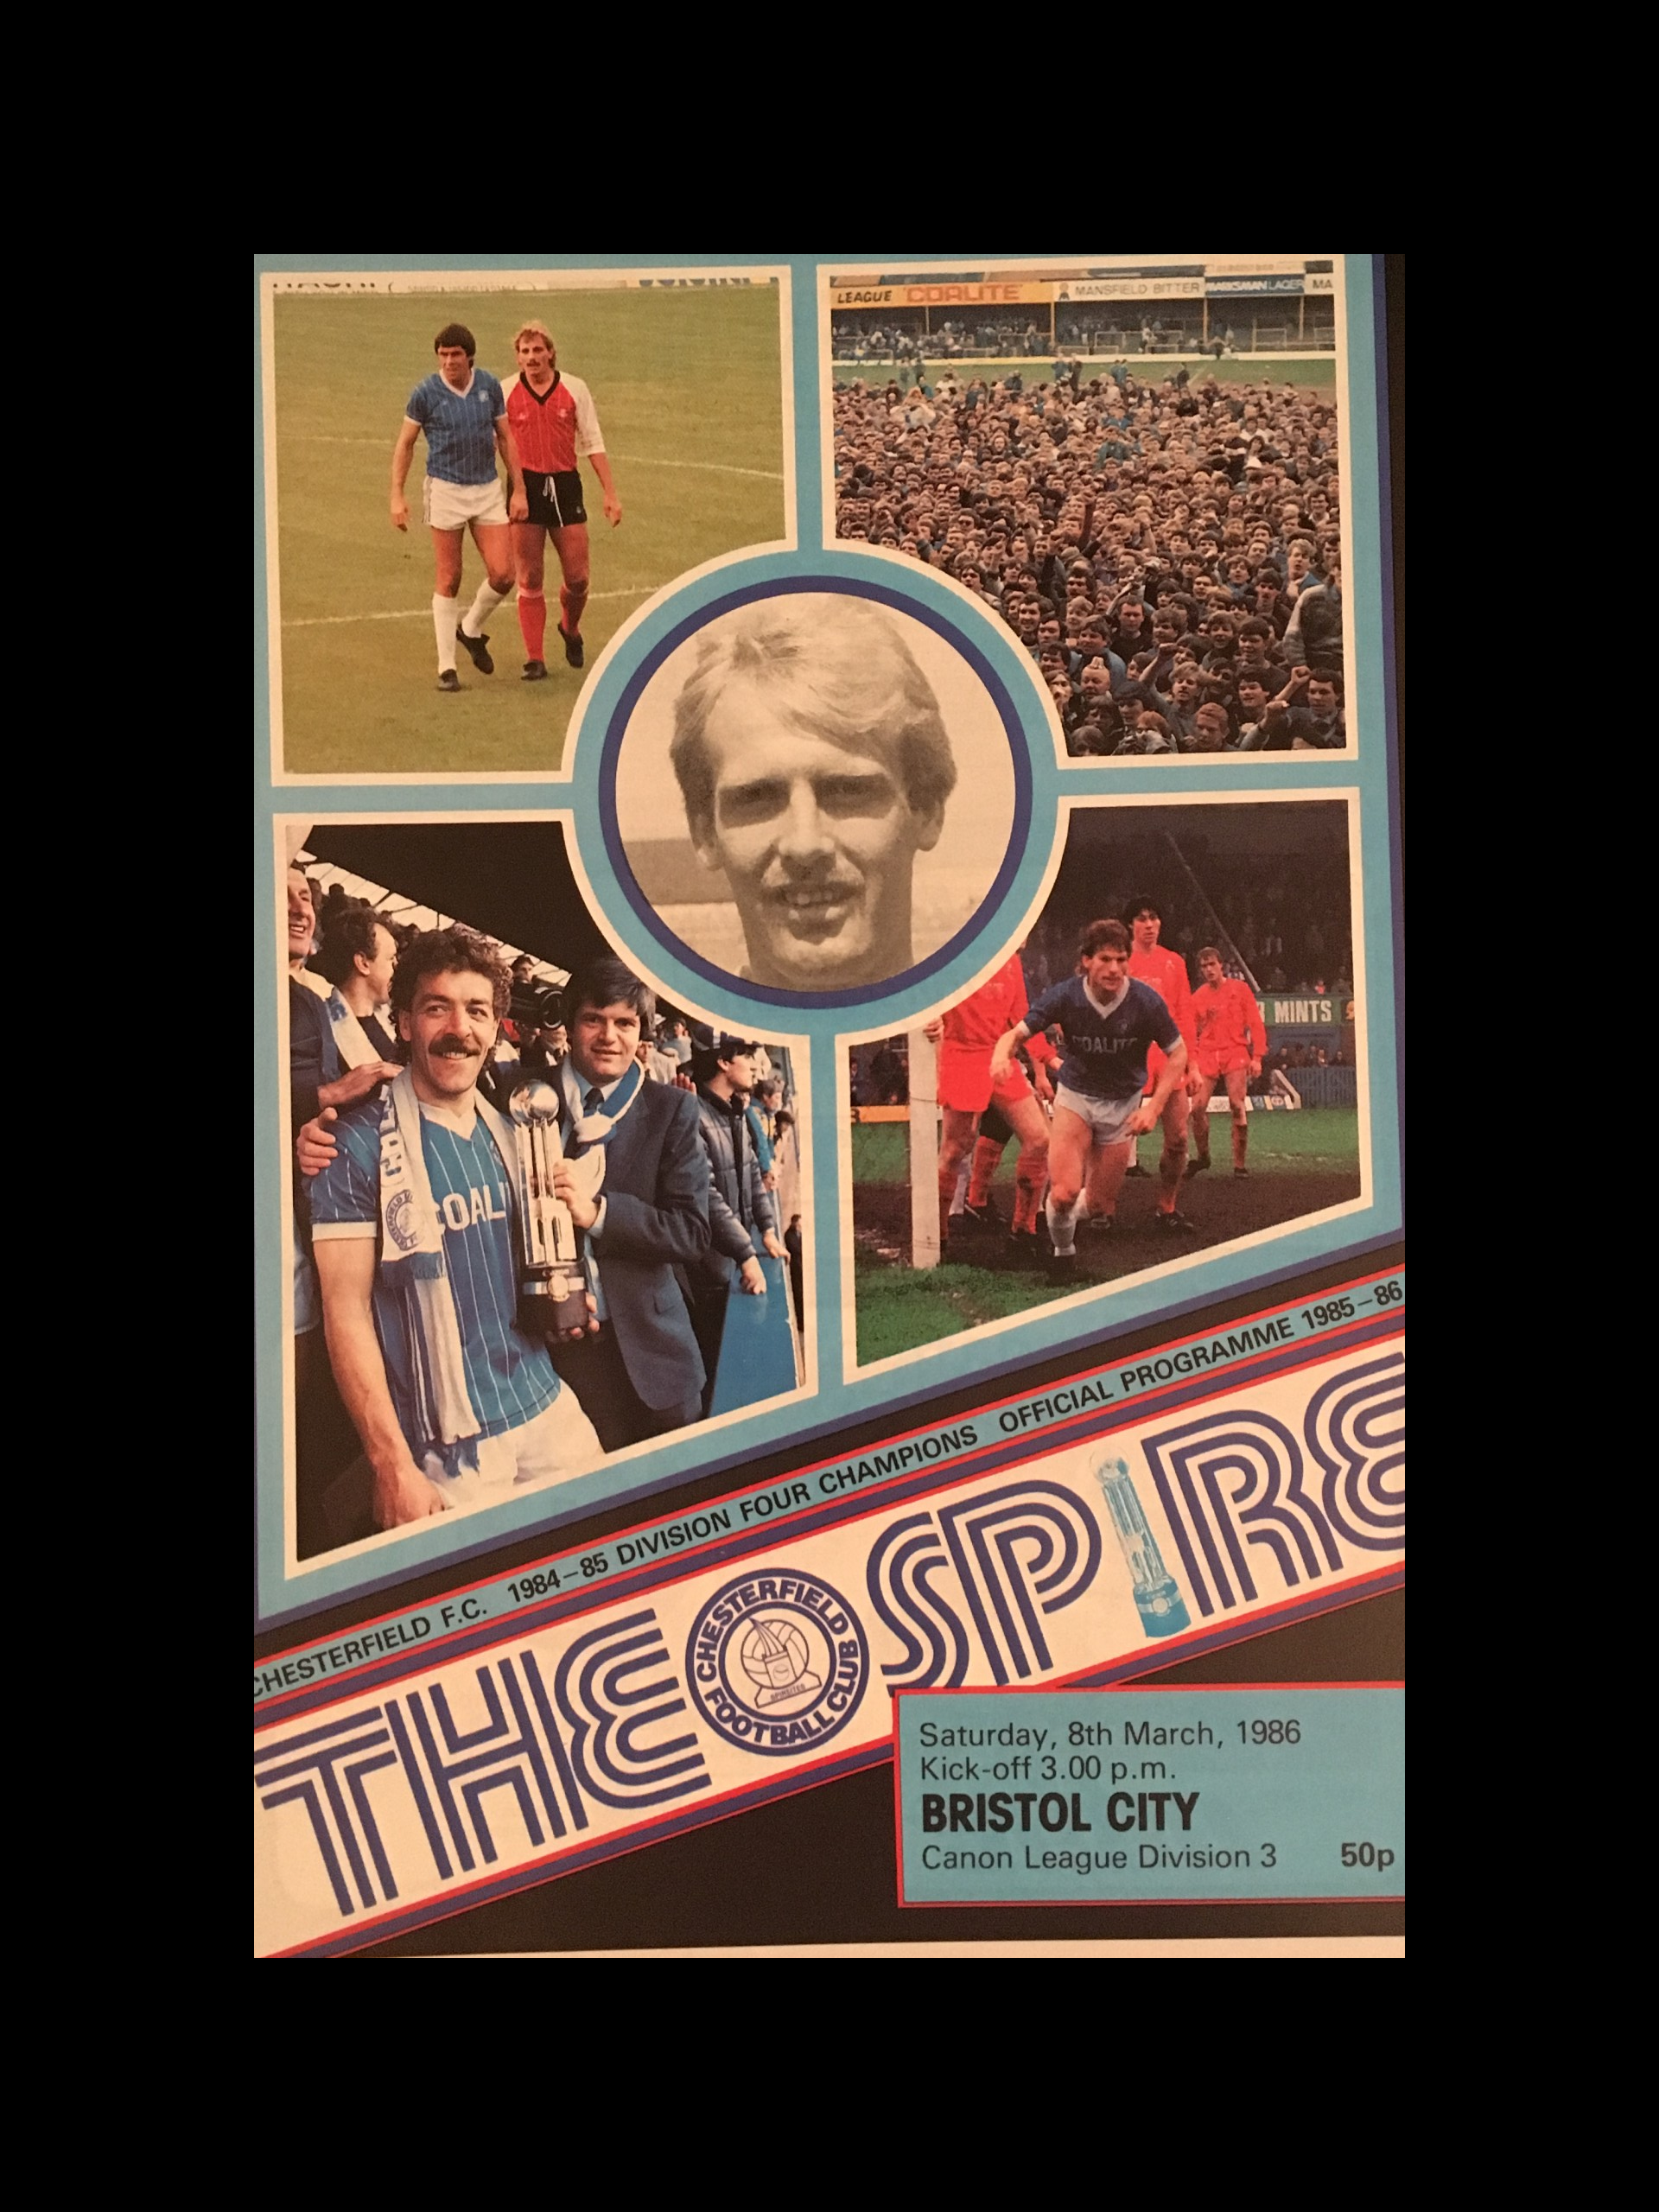 Chesterfield v Bristol City 08-03-86 Programme